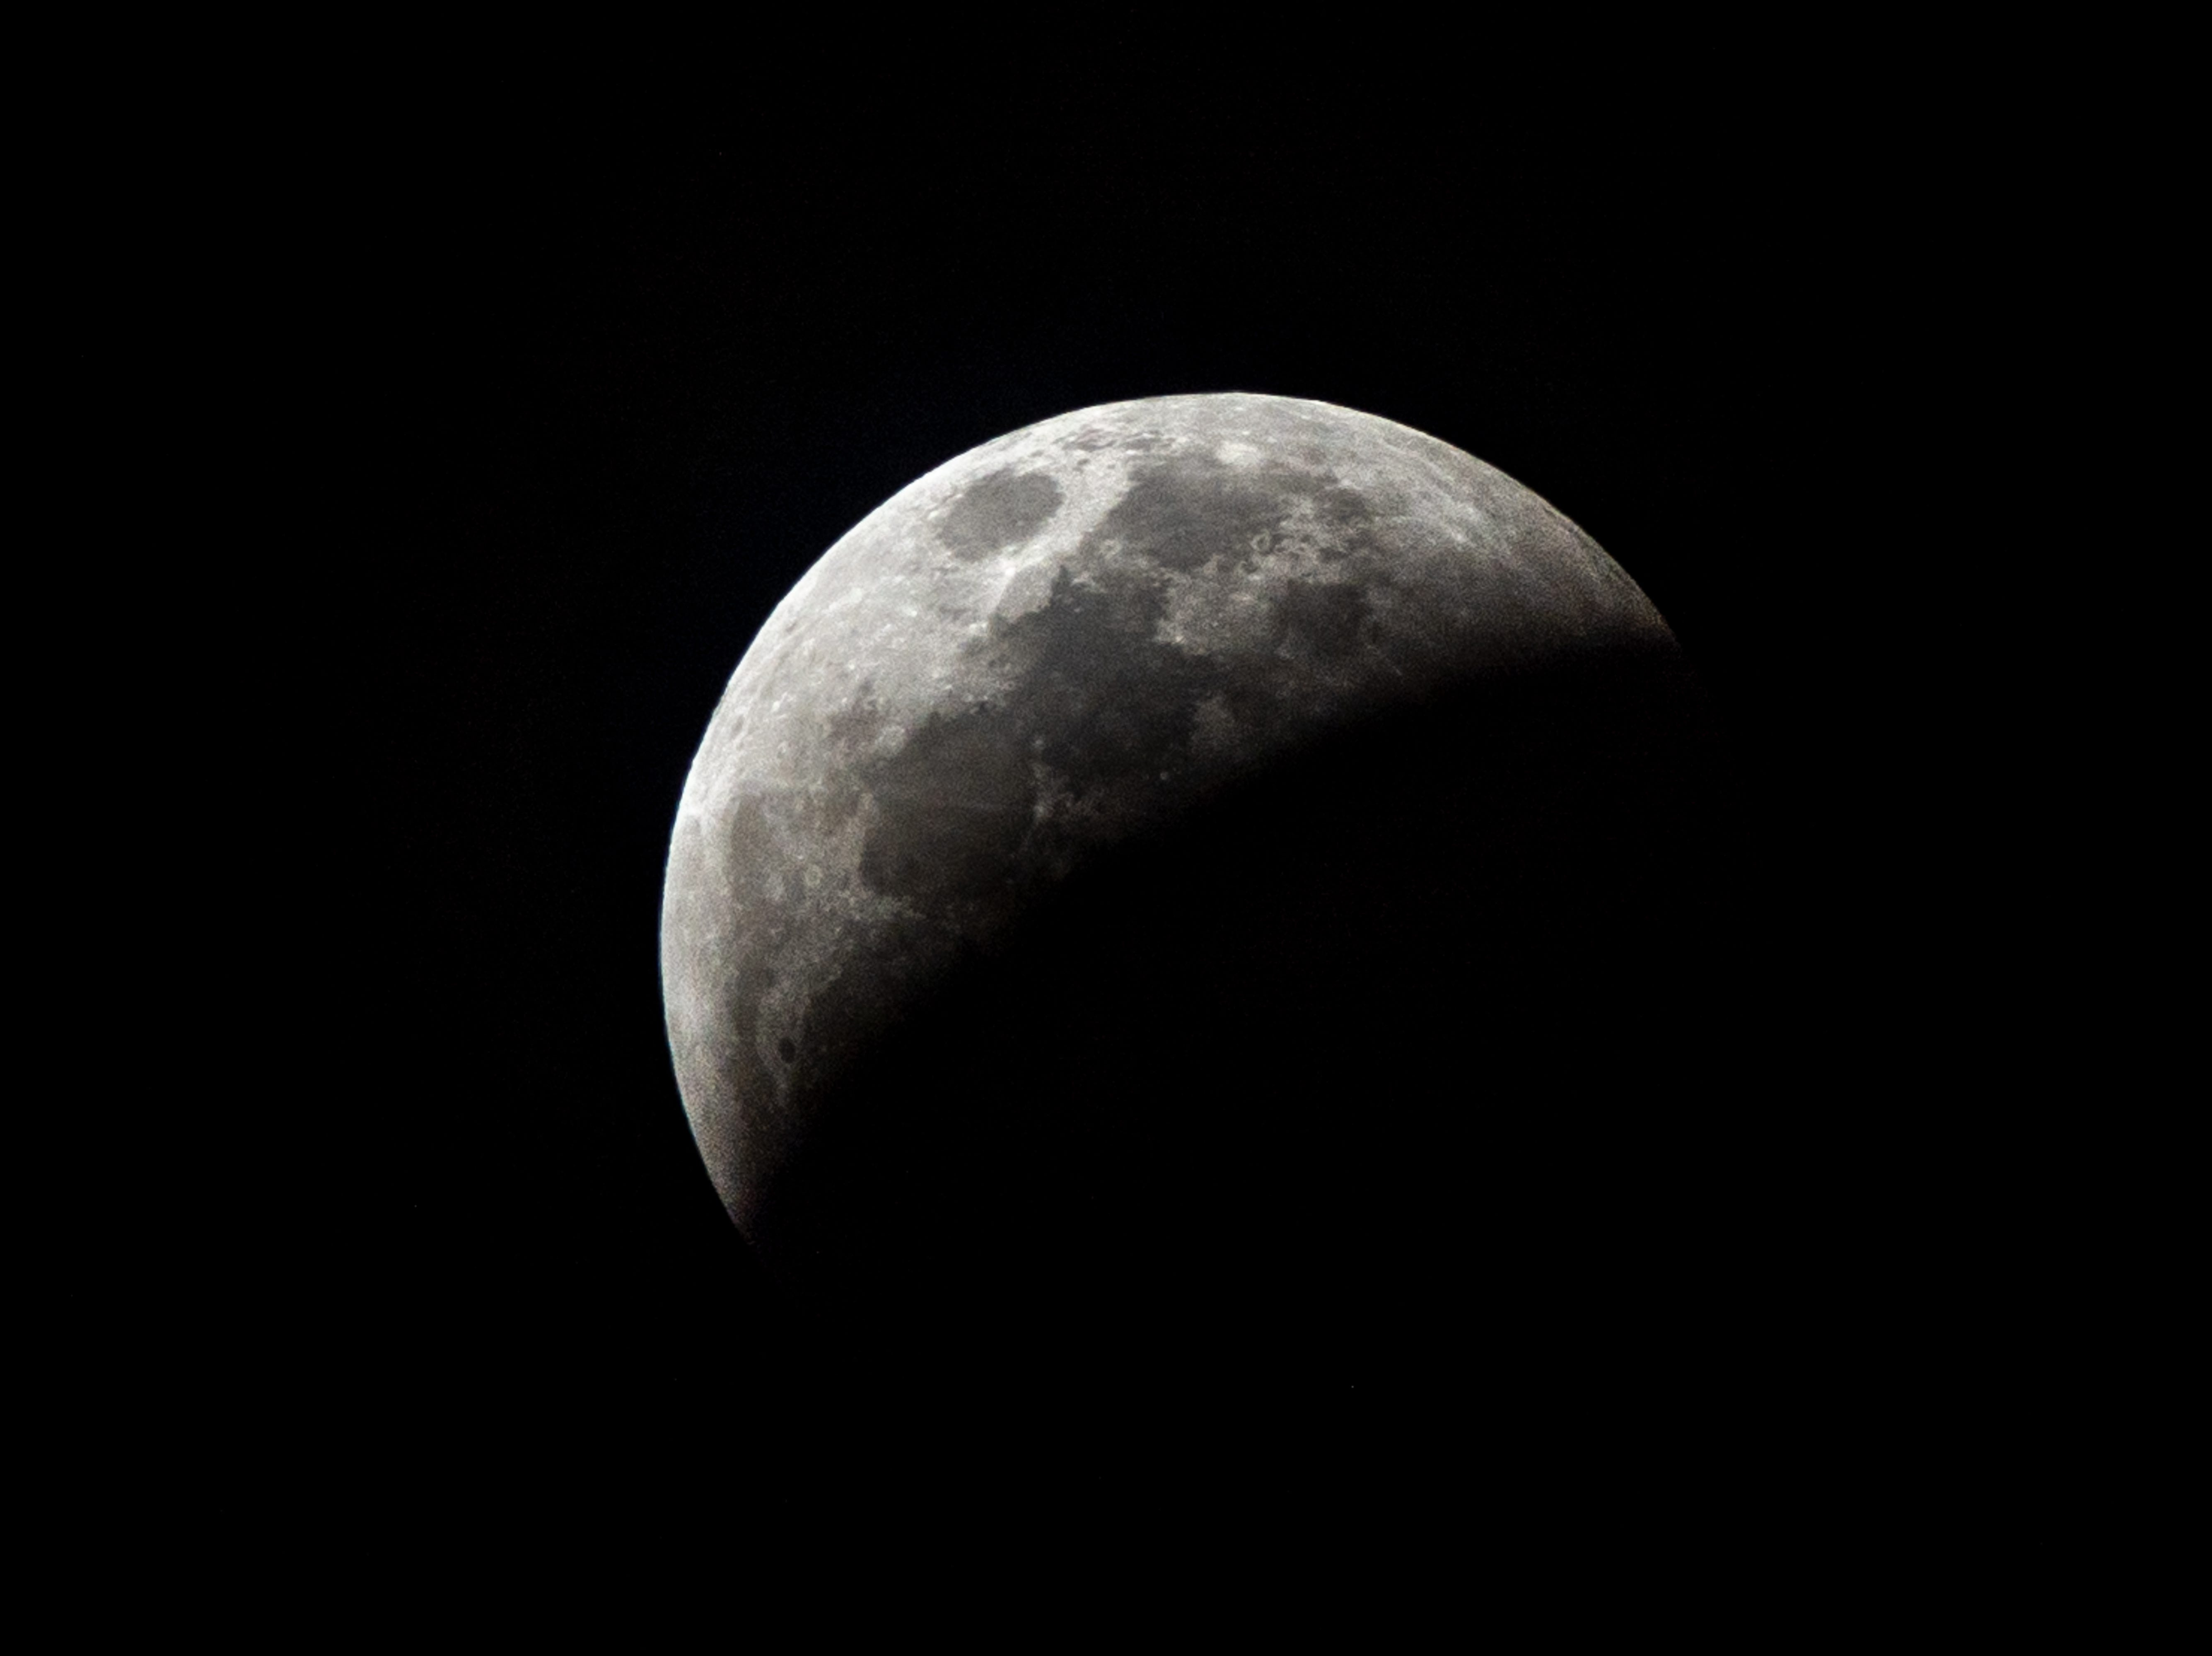 The so-called Super Blood Wolf Moon total lunar eclipse reaches a partial phase where more than half of the Moon is immersed in Earth's umbra, on Sunday January 20, 2019, in Miami, Florida. - The January 21 total lunar eclipse will be the last one until May 2021, and the last one visible from the United States until 2022. (Photo by Gaston De Cardenas / AFP)